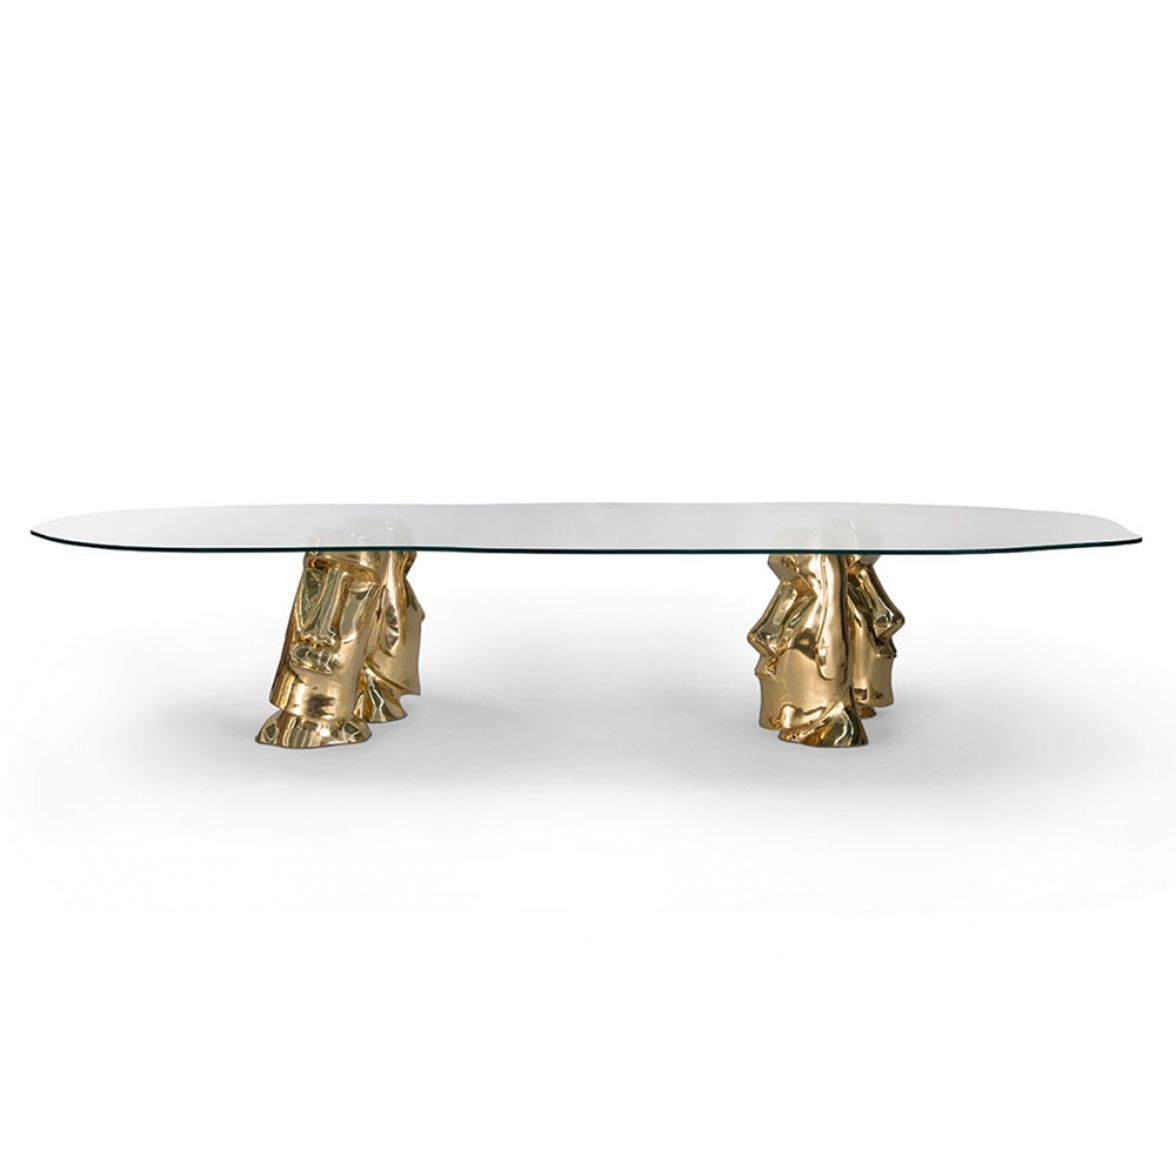 Moai Dining table